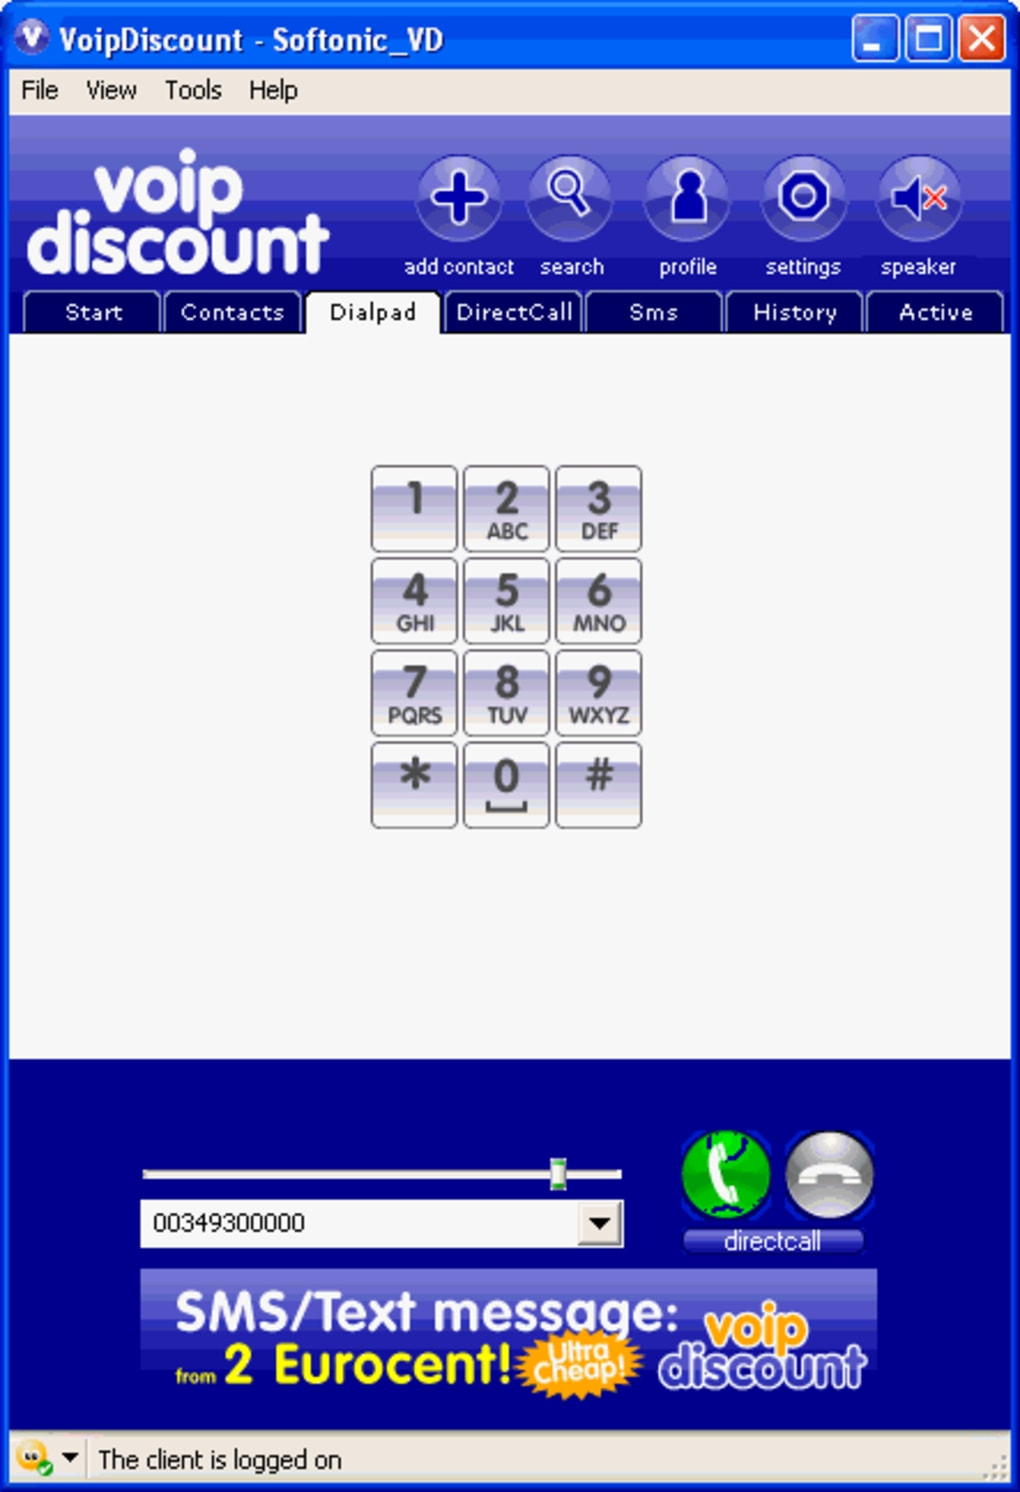 voipdiscount nouvelle version